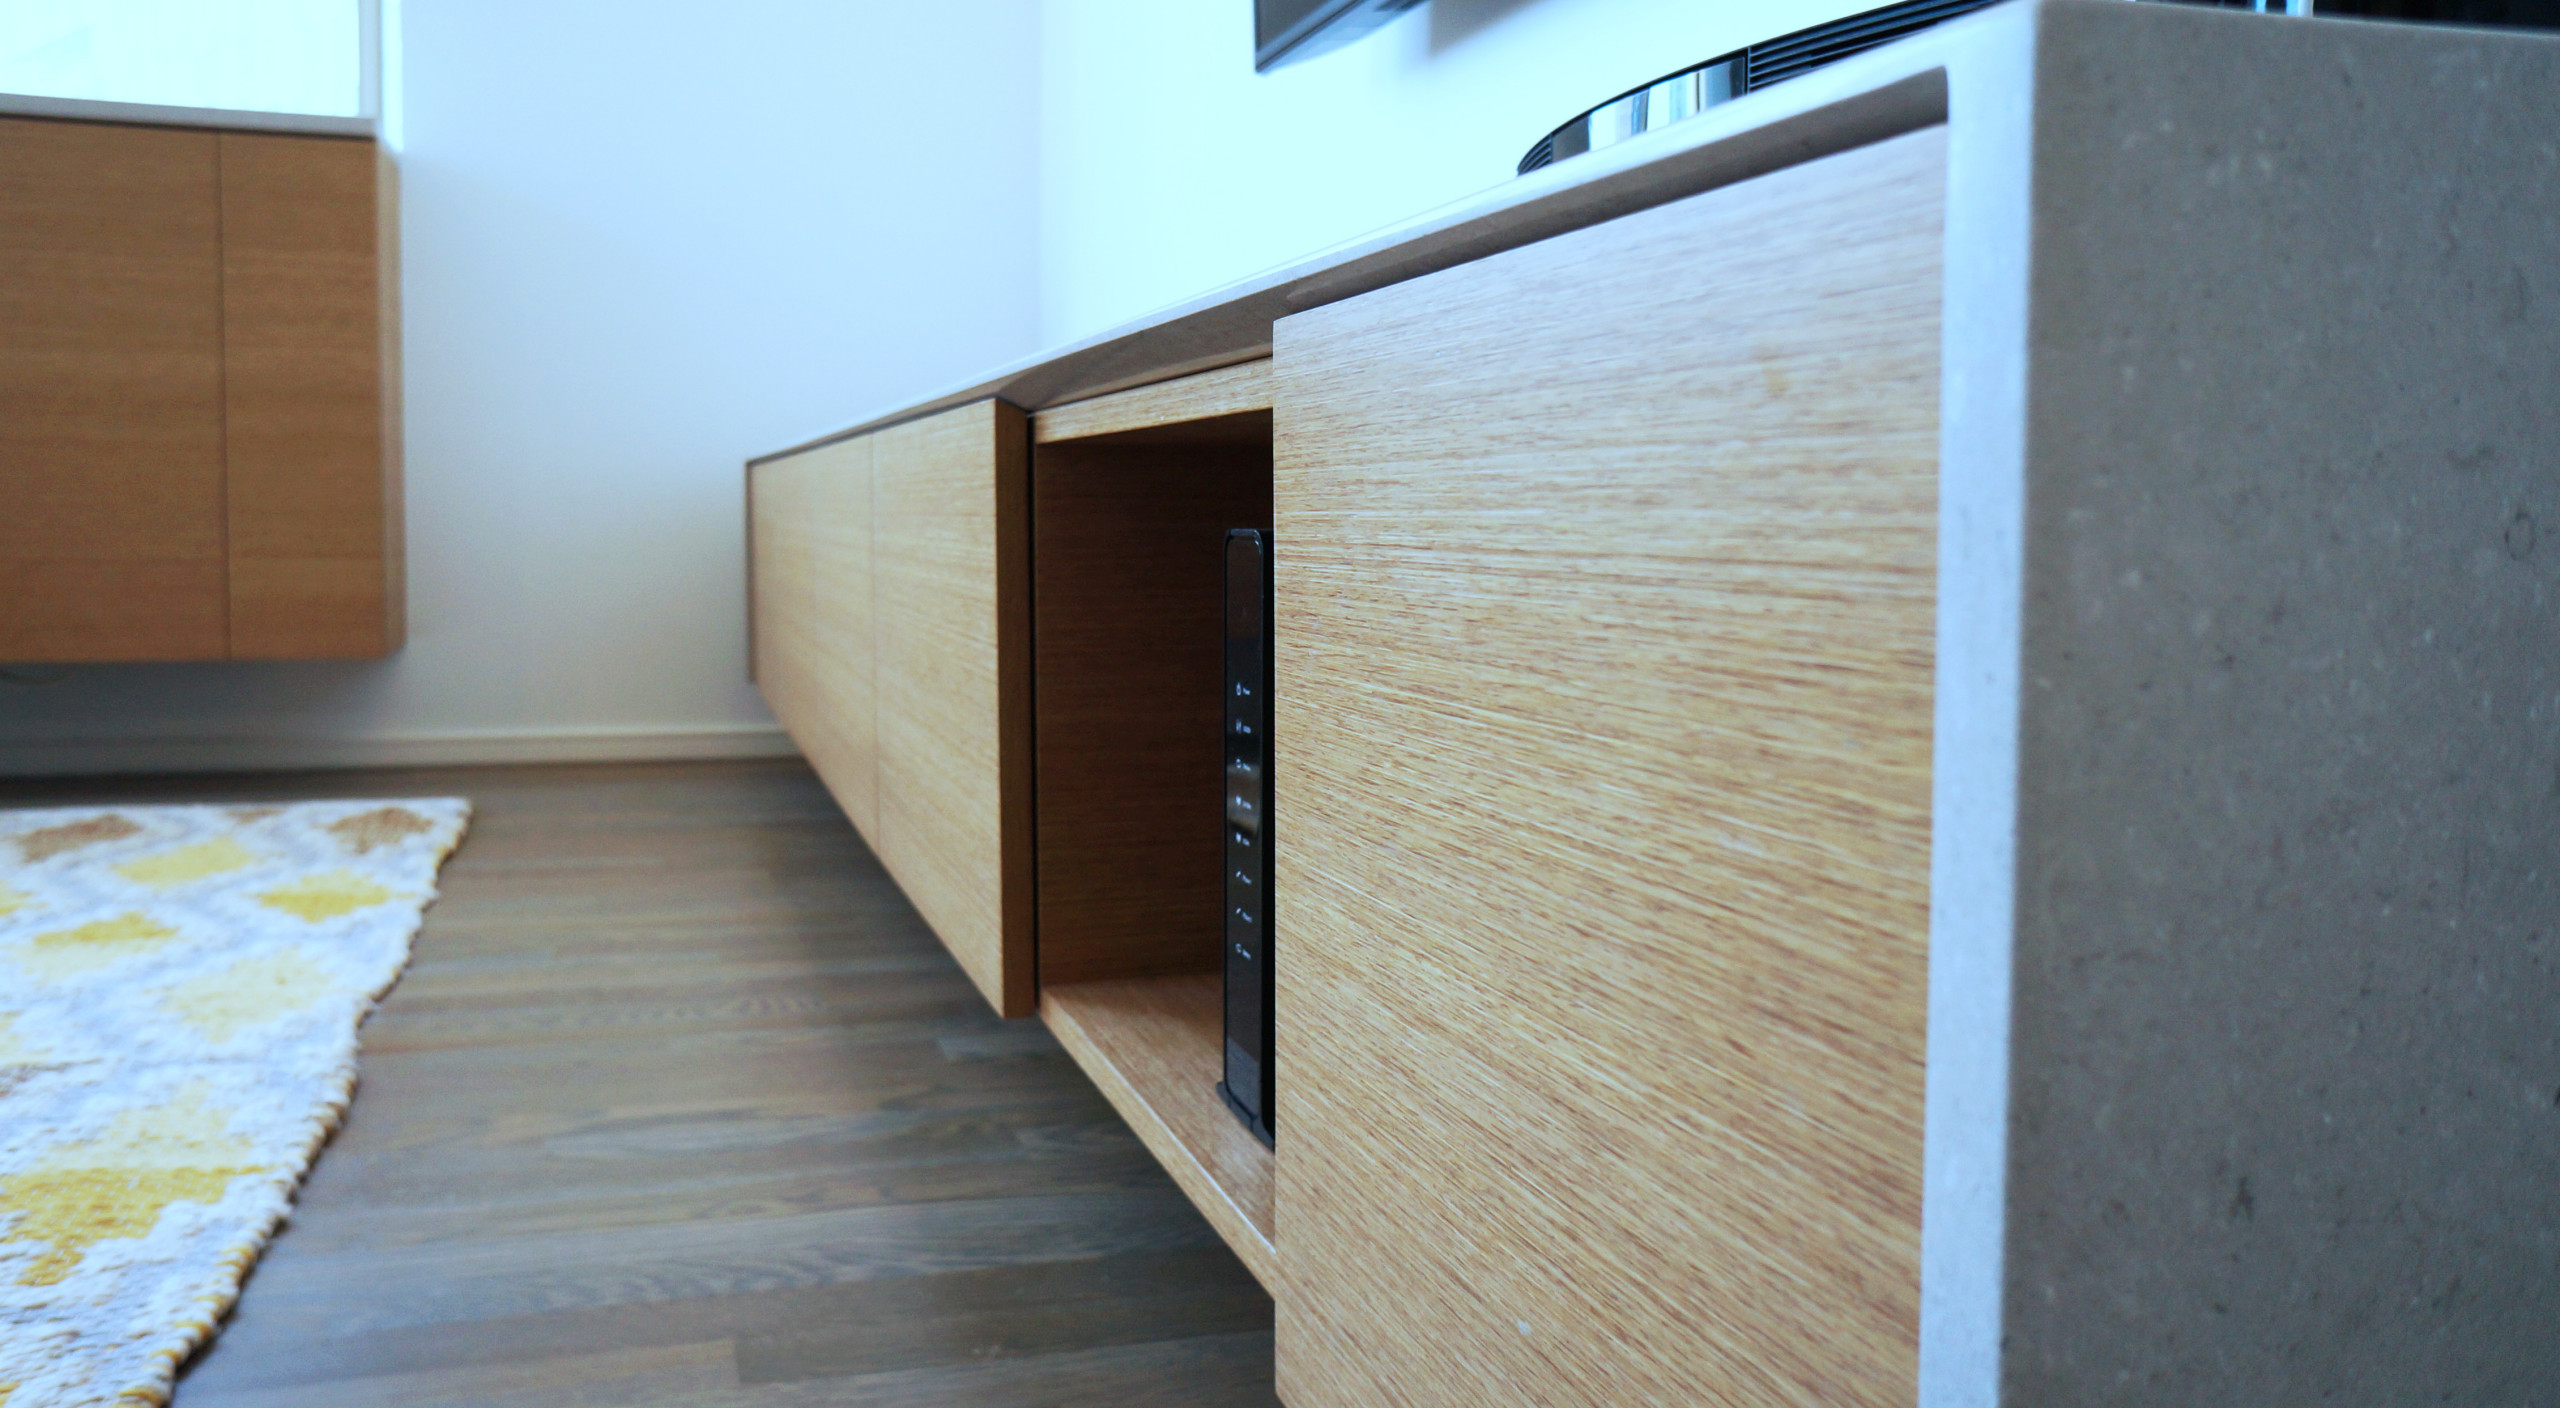 Media cabinet  - caesarstone wrapped counter and wood veneer